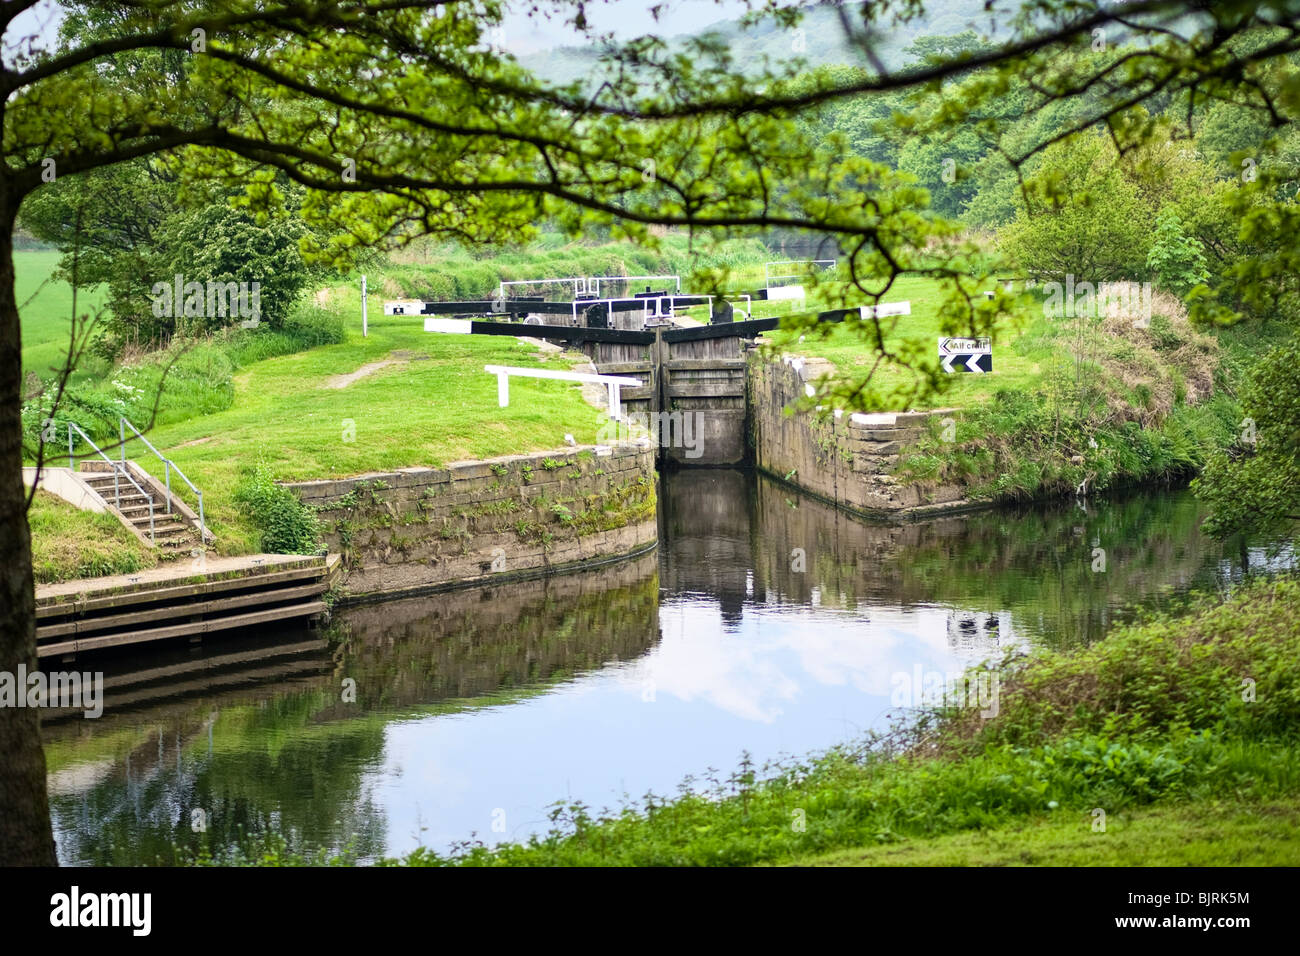 Canal lock on the Huddersfield Canal, West Yorkshire, England, UK - Stock Image